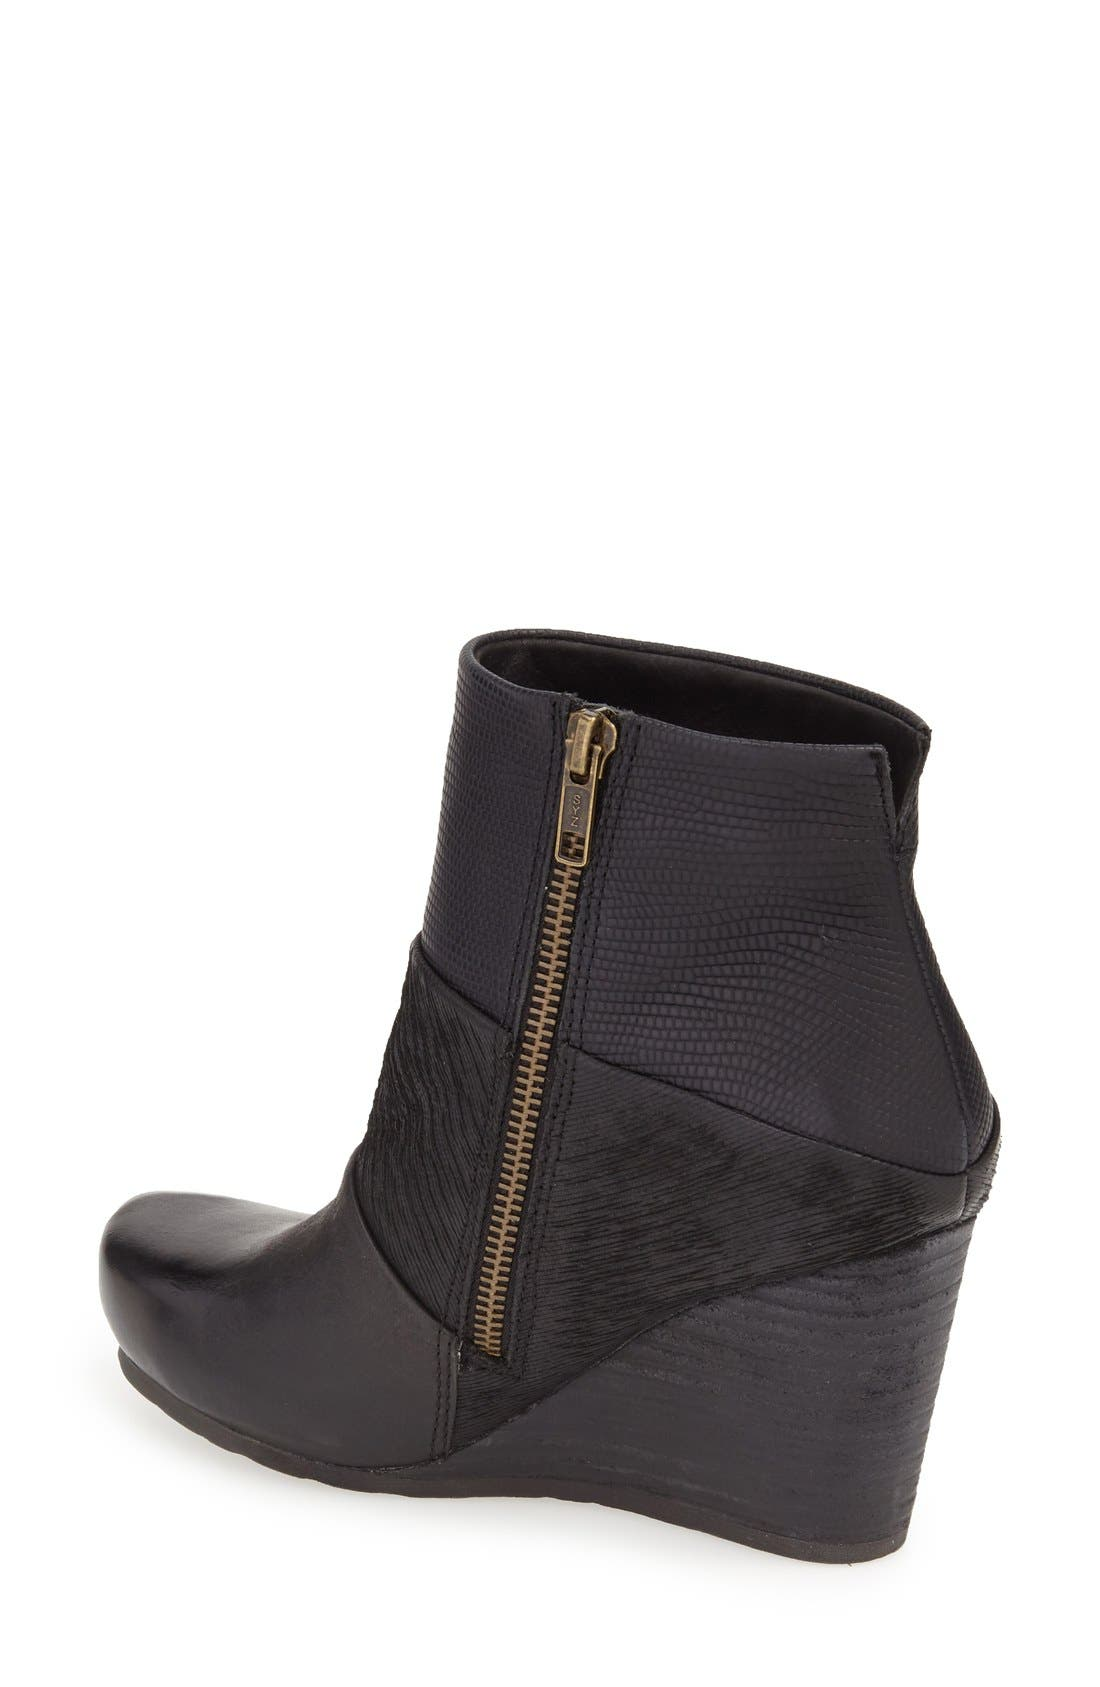 'Dharma' Wedge Bootie,                             Alternate thumbnail 3, color,                             001